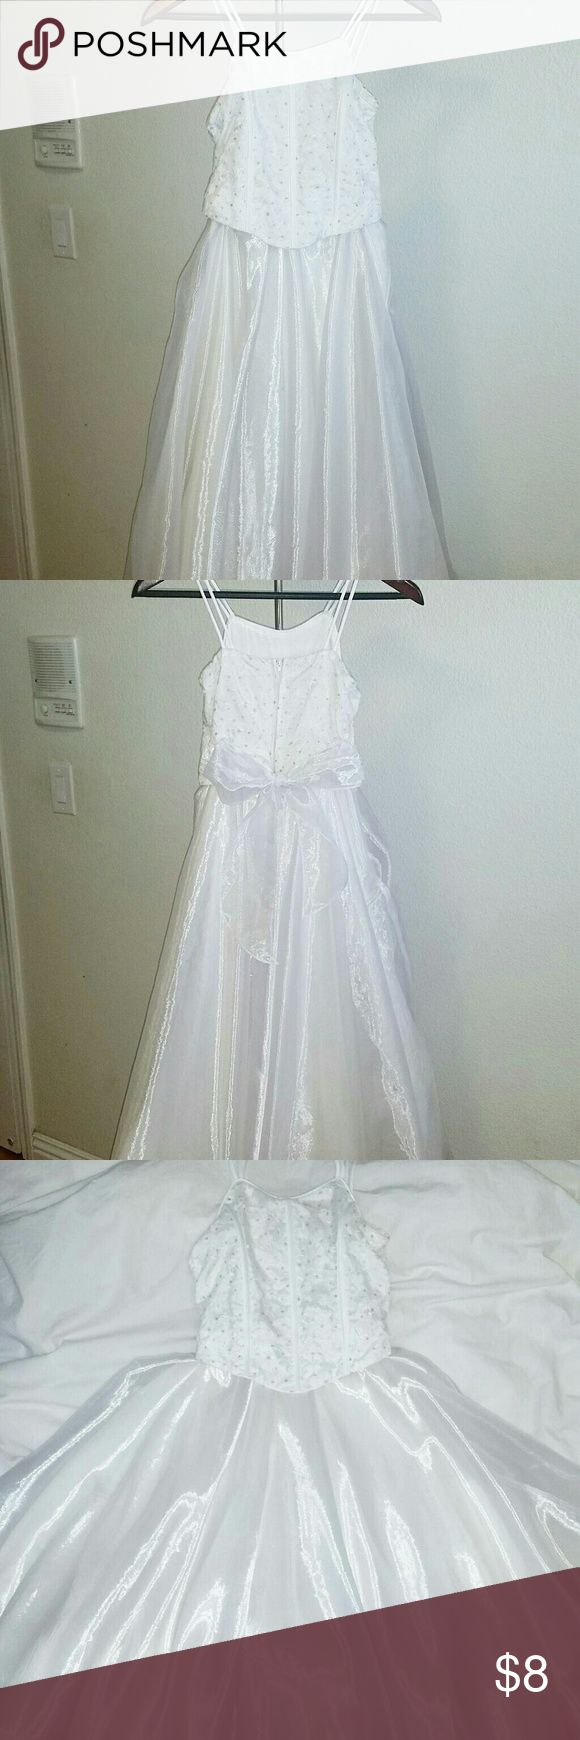 White Children's Dress Size 10 White children's dress size 10. Perfect for pageants, birthdays, weddings, holiday parties, etc. Top is decorated with floral patterns and glitter. Dress is long and flares out when spun in circle. Dresses